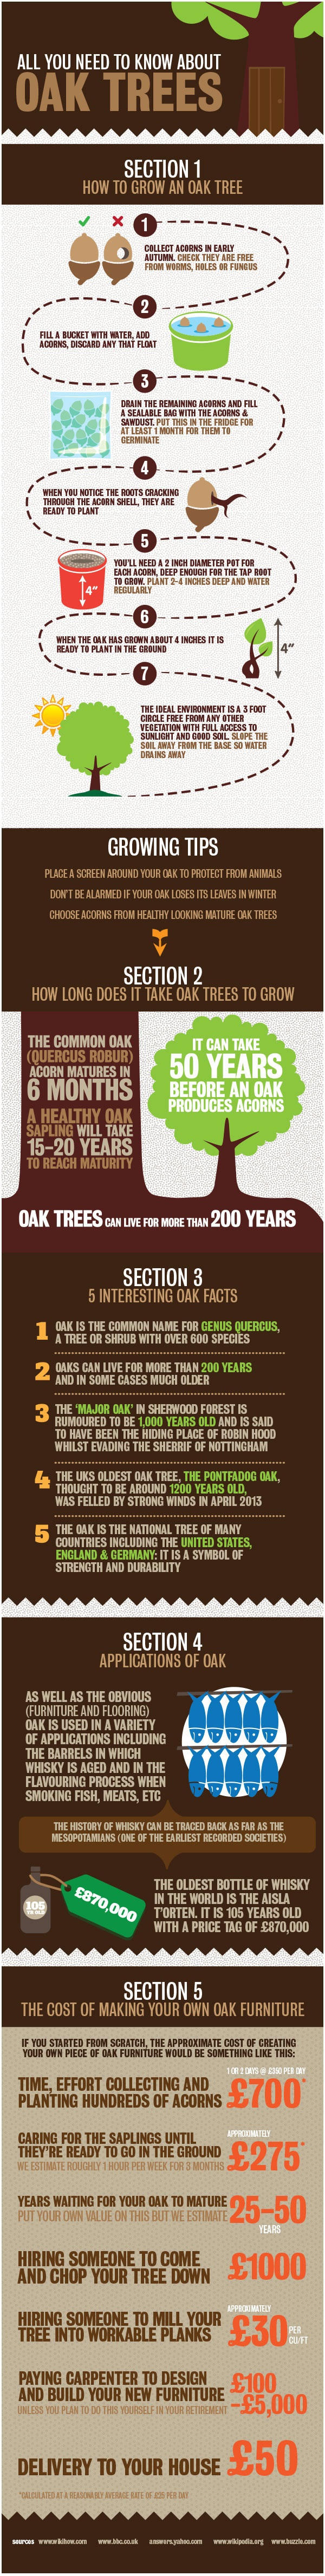 know about oak trees